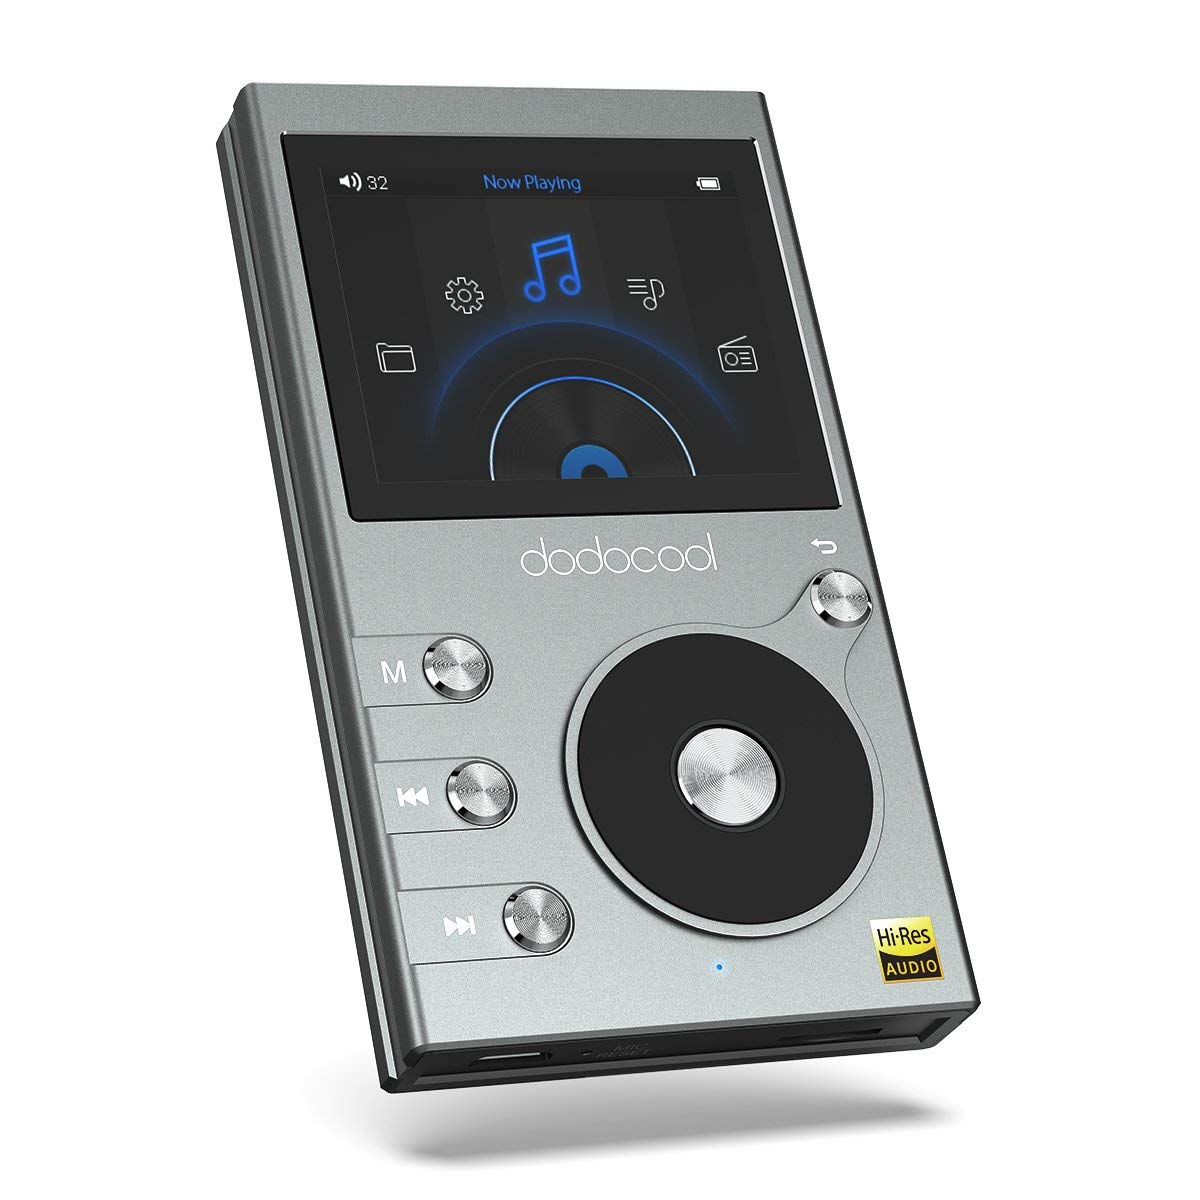 Normally $50, this hi-res MP3 player is 25 percent off with this code (Photo via Amazon)